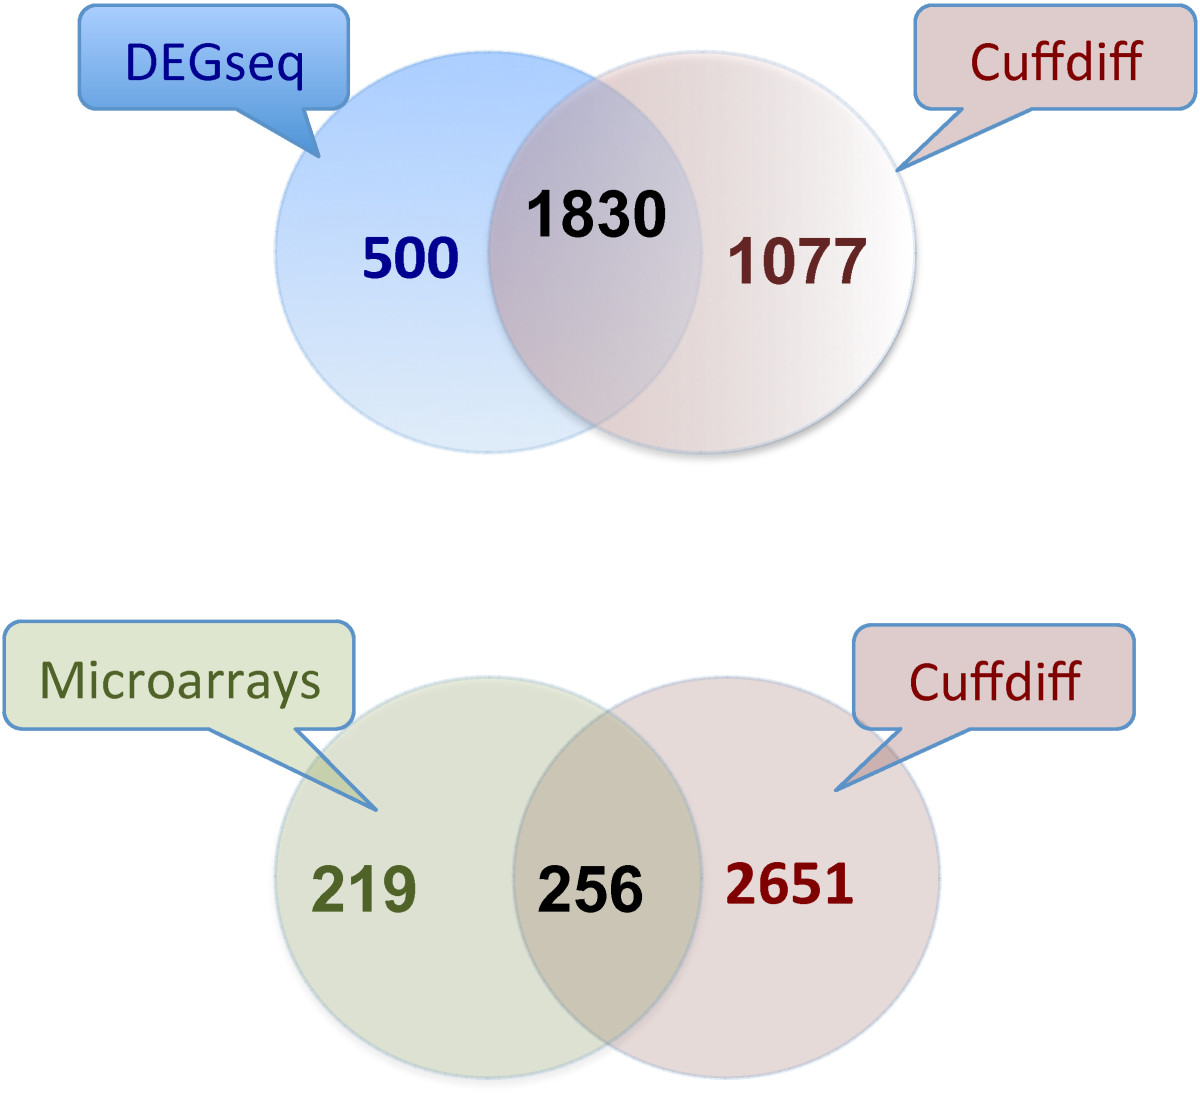 https://static-content.springer.com/image/art%3A10.1186%2F1471-2164-12-552/MediaObjects/12864_2011_Article_3685_Fig4_HTML.jpg